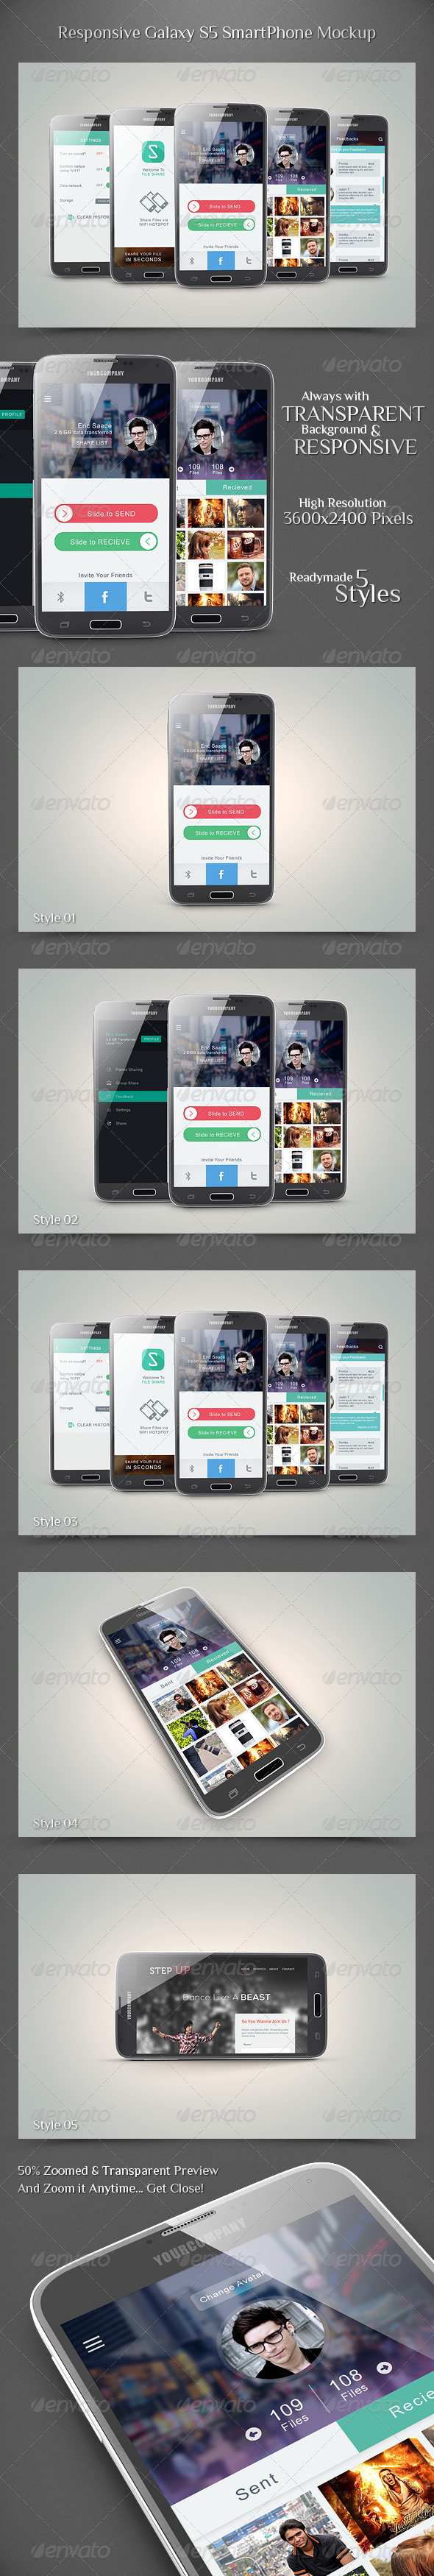 Responsive Galaxy S5 Smartphone Mockup - Mobile Displays